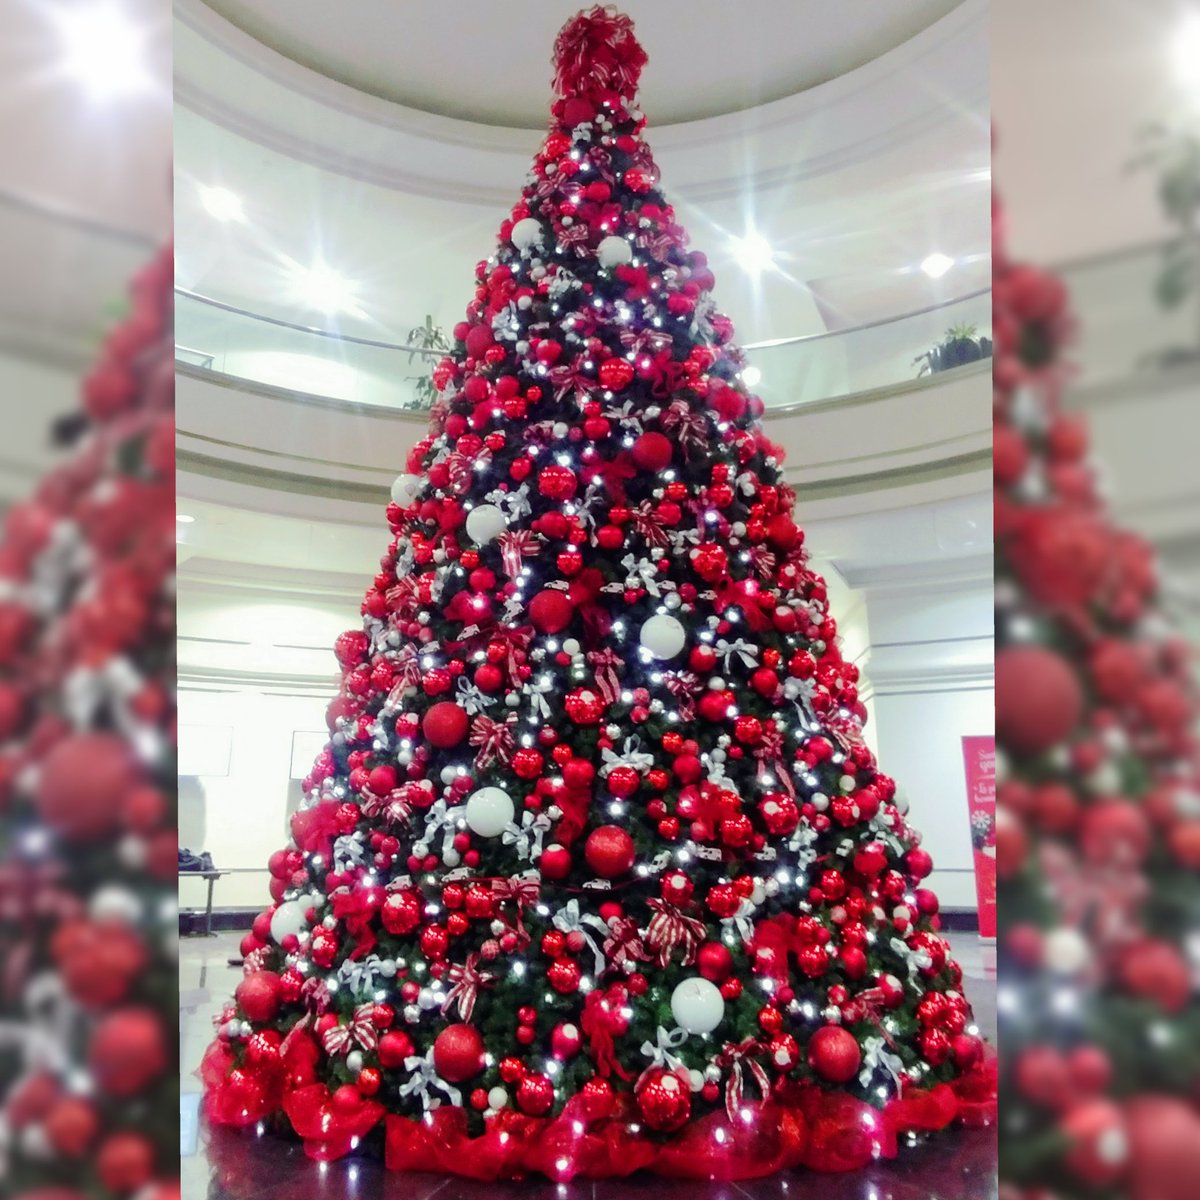 Sharon bosley house on twitter and the avgd team does it again canada post ottawa headquarters is christmas ready make sure to stop by and enjoy this massive 20 ft tree while mailing your letter to santa spiritdancerdesigns Gallery